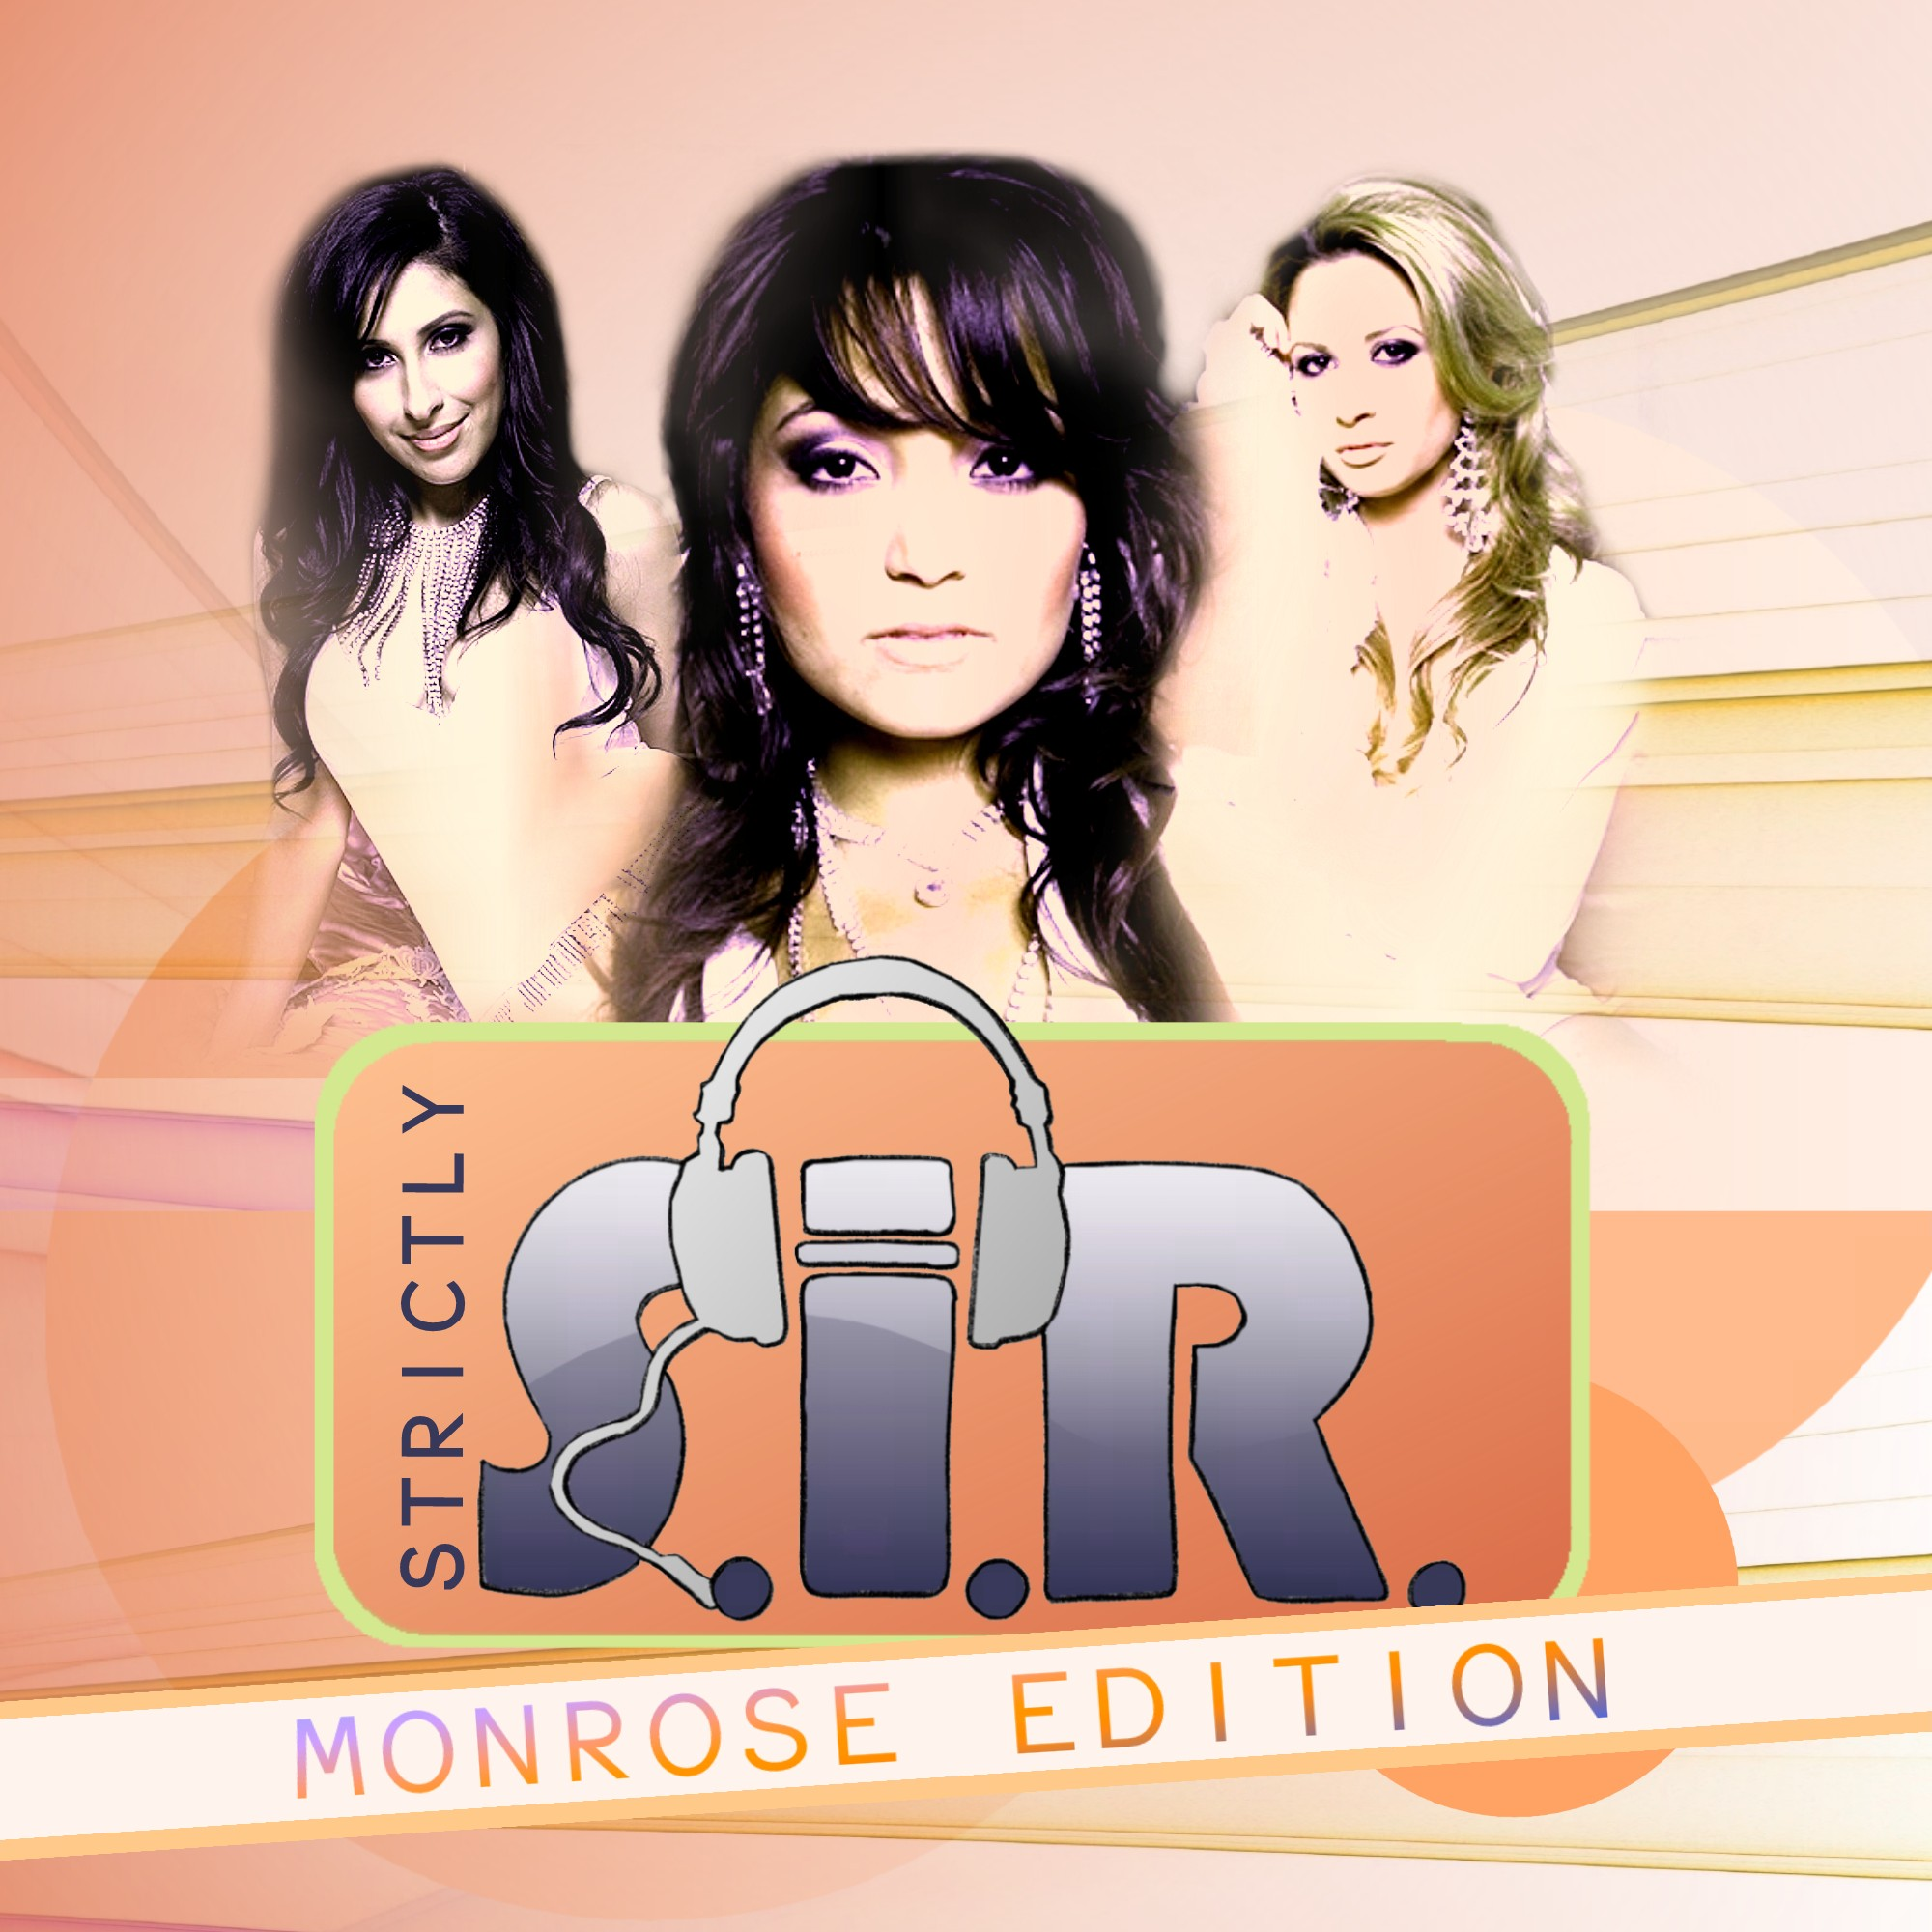 10 - Monrose vs. Ich + Ich - What you don't know (You think I'm Strong) (S.I.R. Remix)